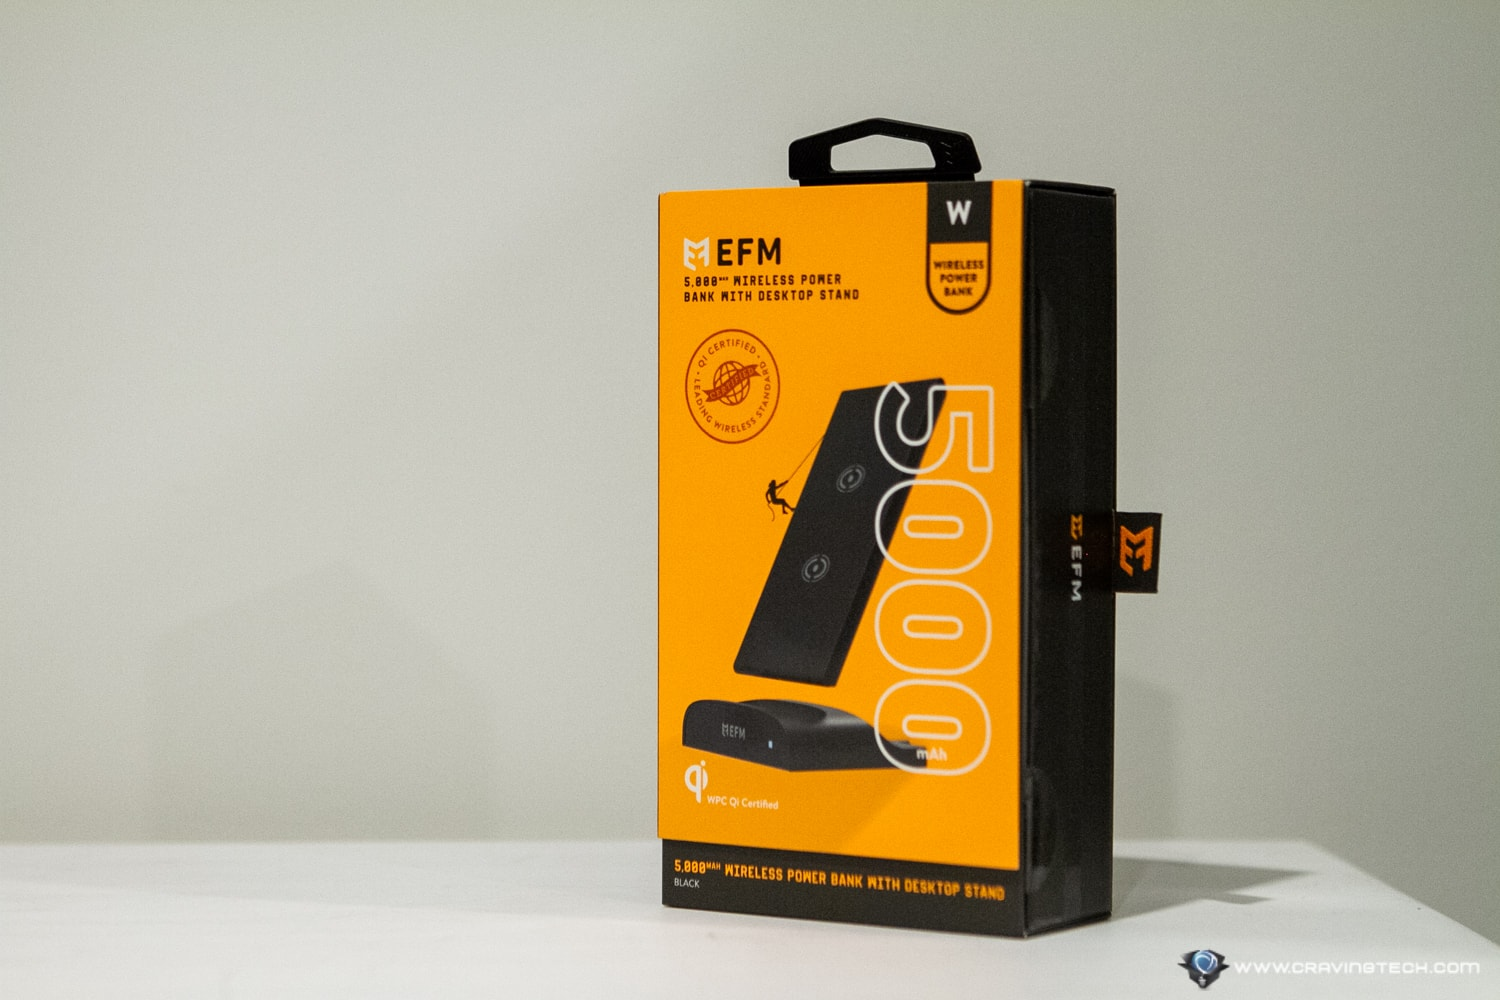 EFM Wireless Power Bank with Desktop Stand Review Packaging